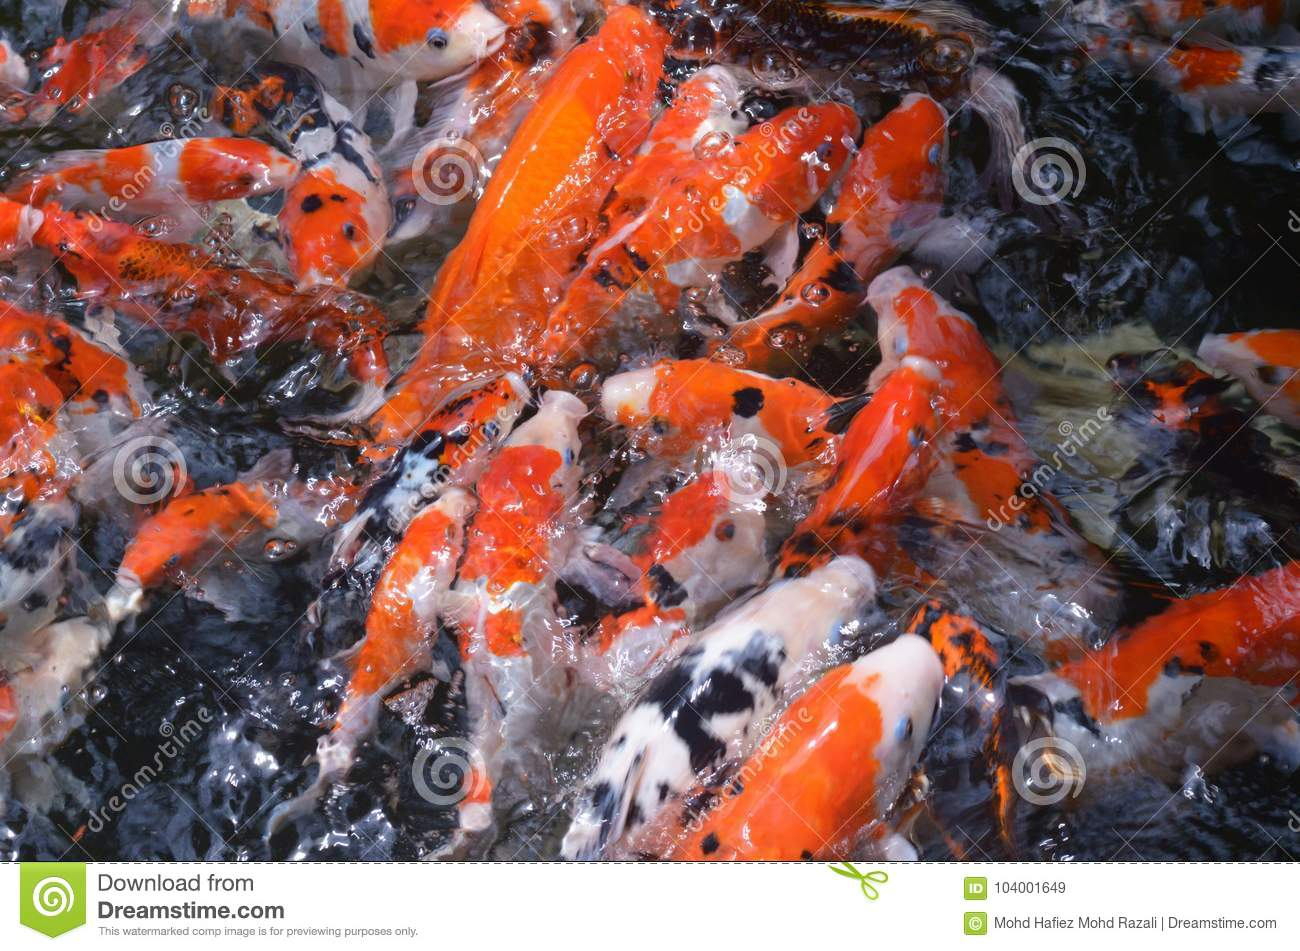 Feeding Carp / Koi Fish In Pond / Pool Stock Image - Image of ...